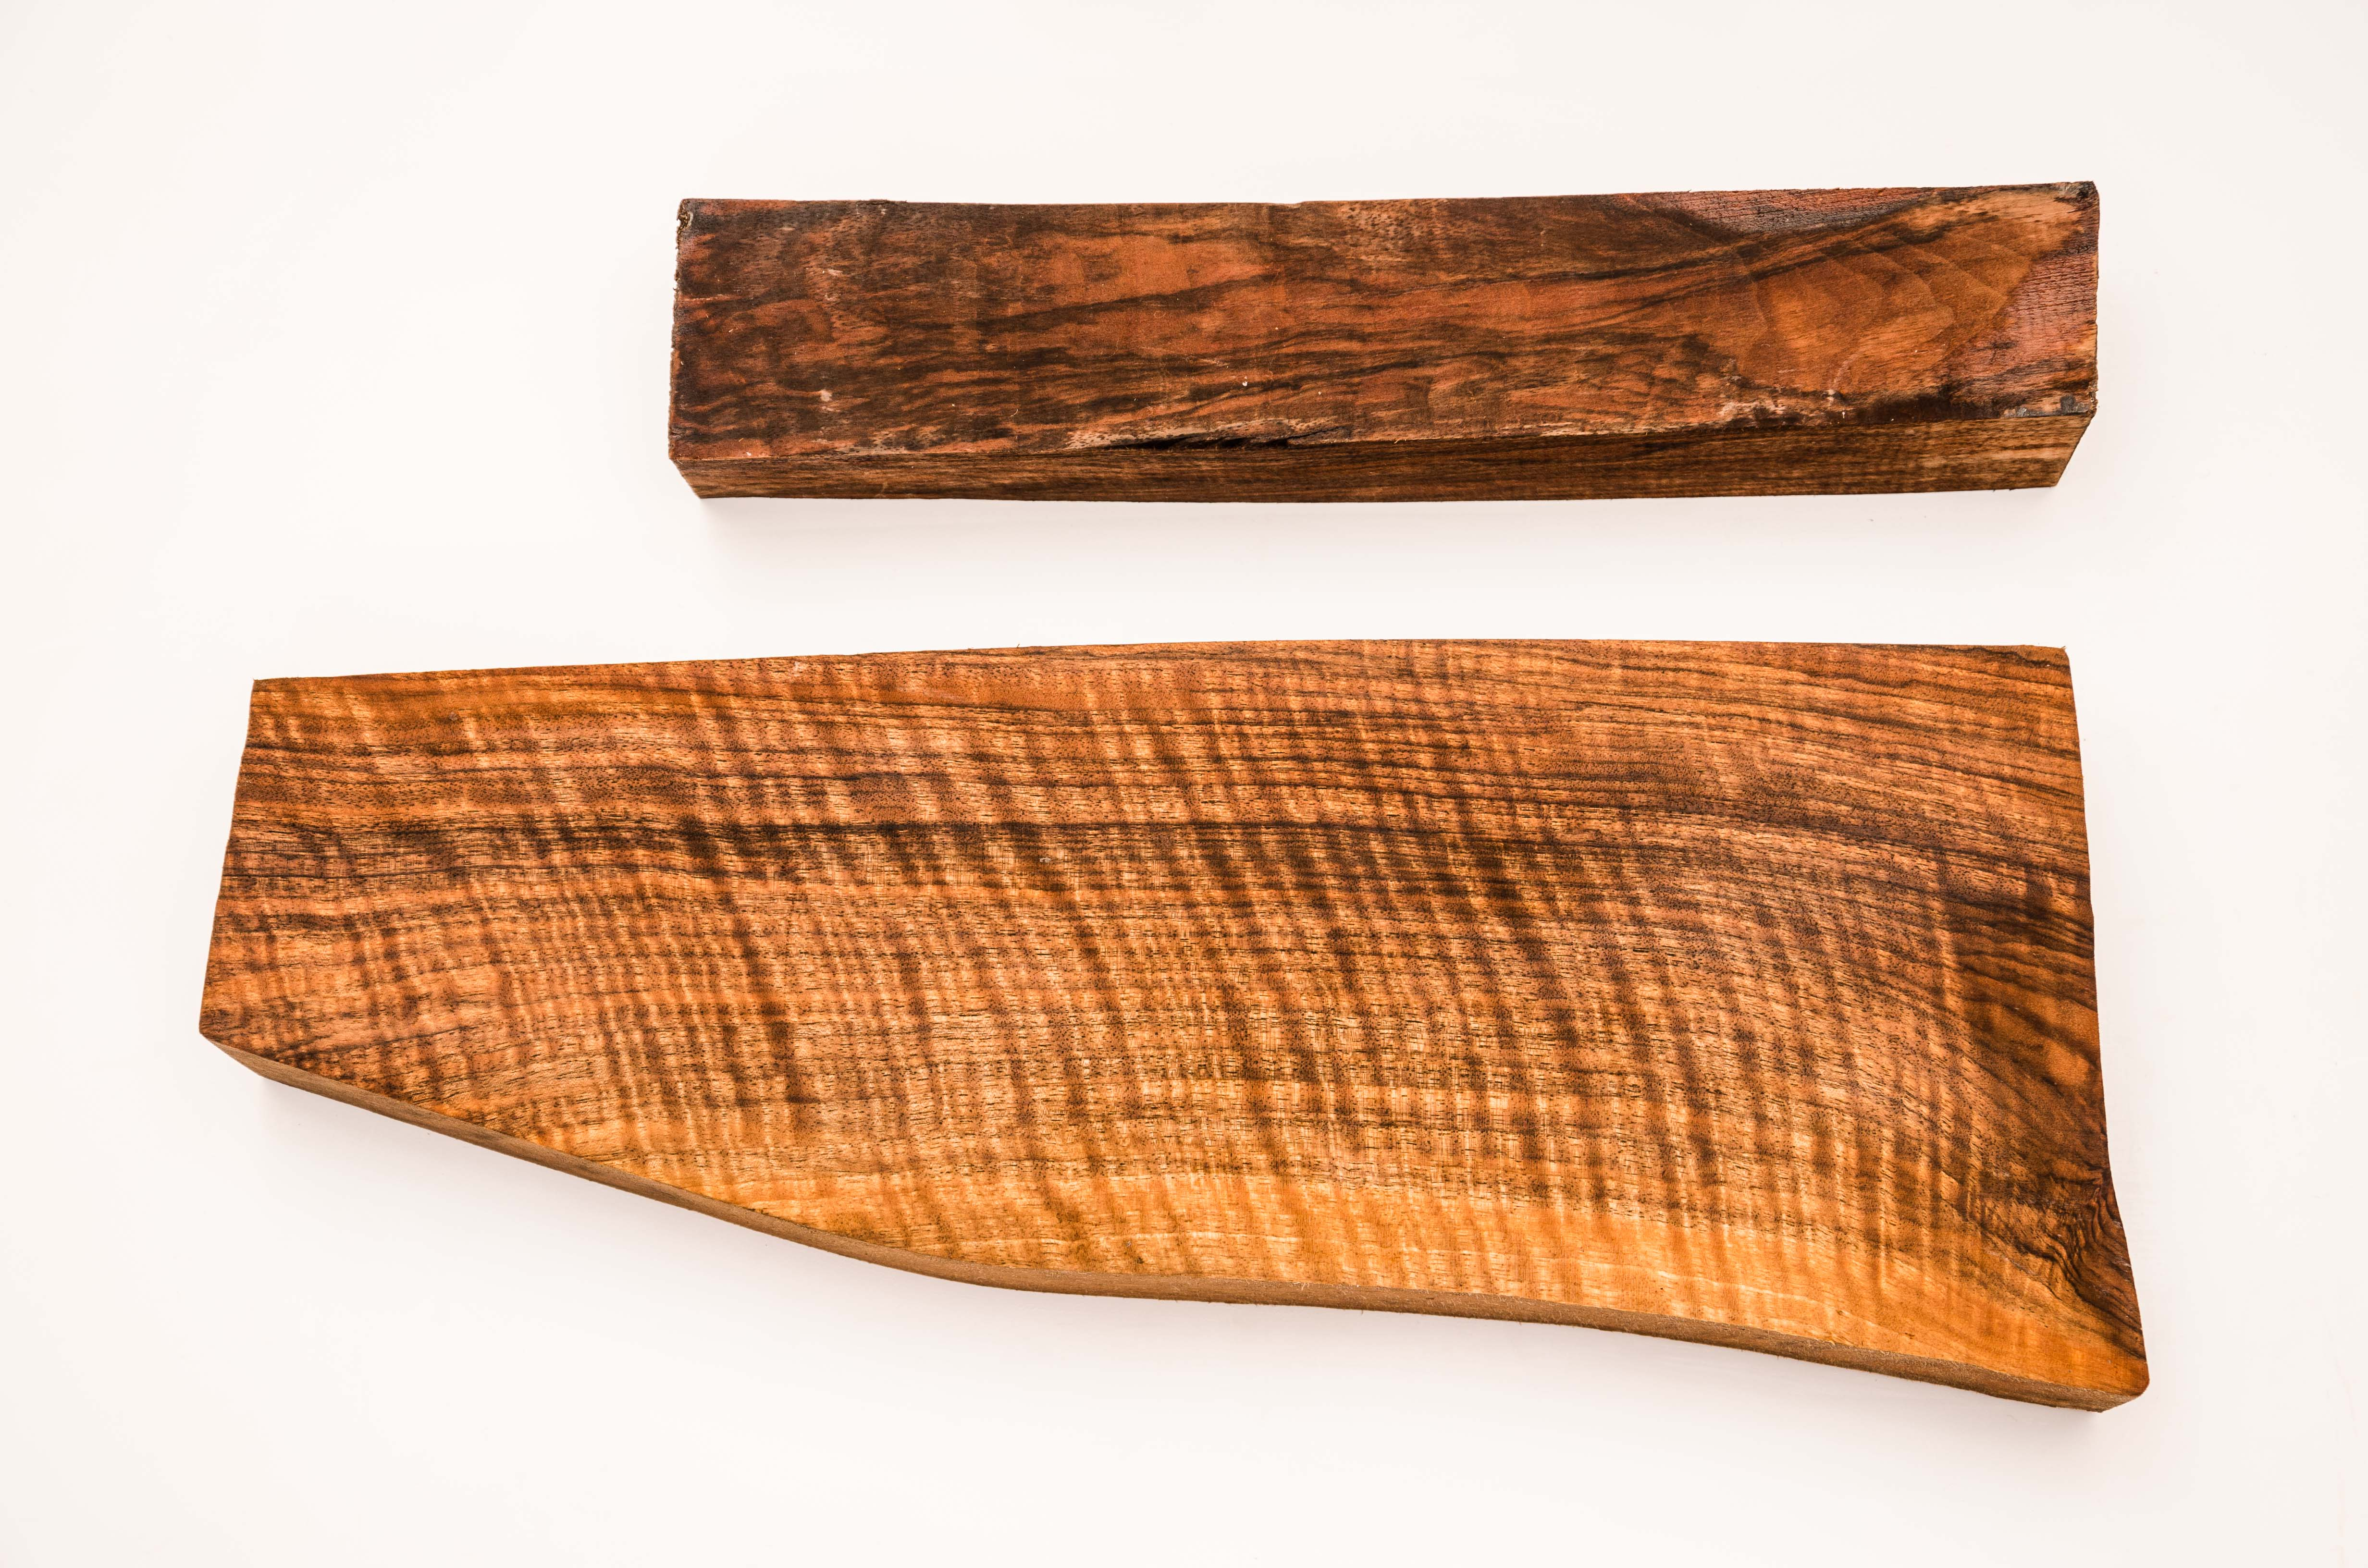 walnut_stock_blanks_for_guns_and_rifles-0589